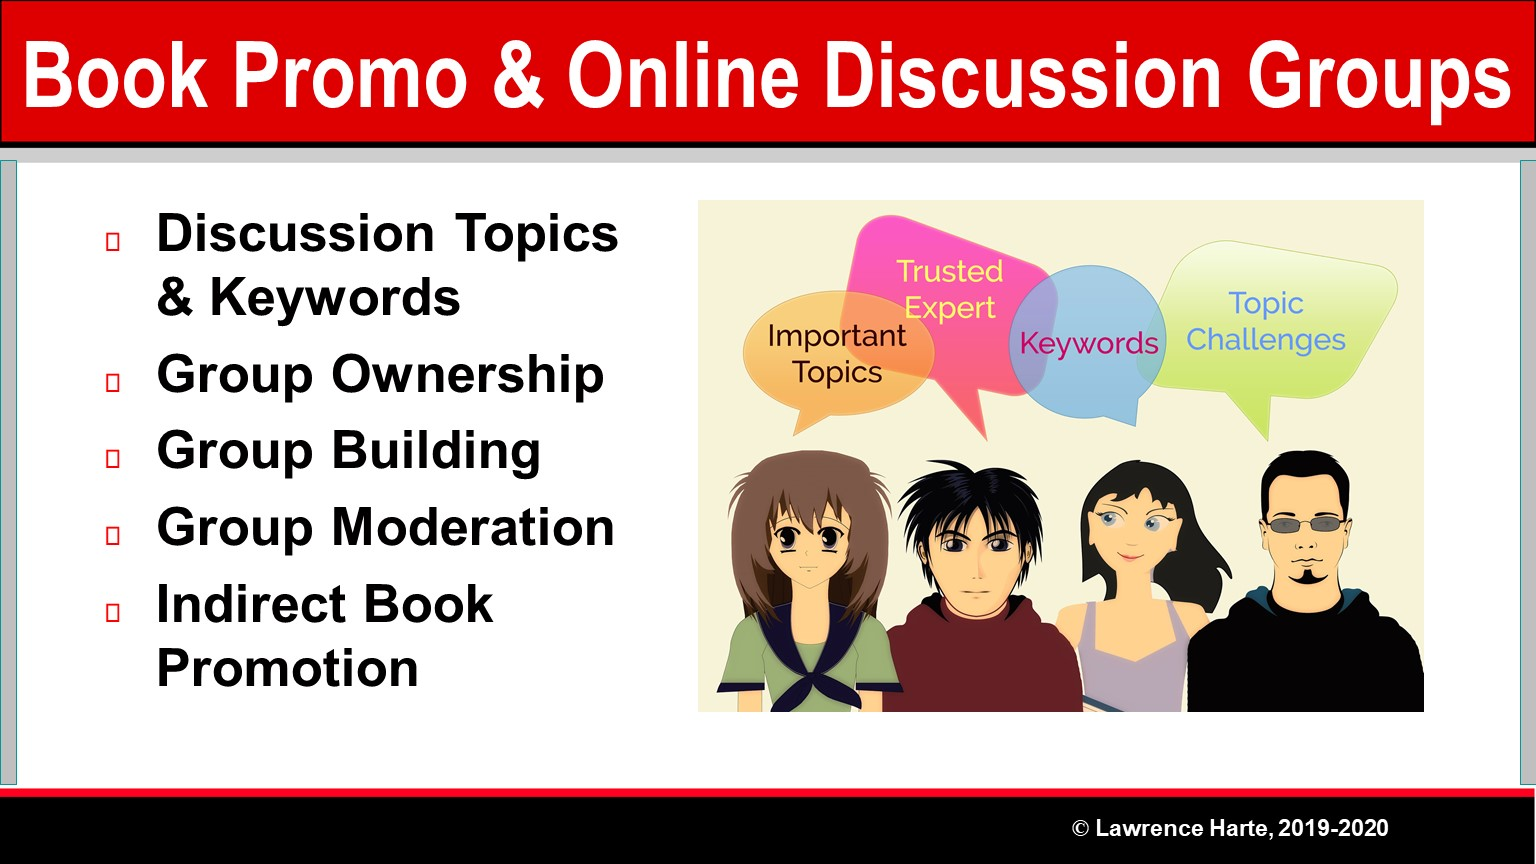 Book Pre-Launch Marketing Online Discussion Groups